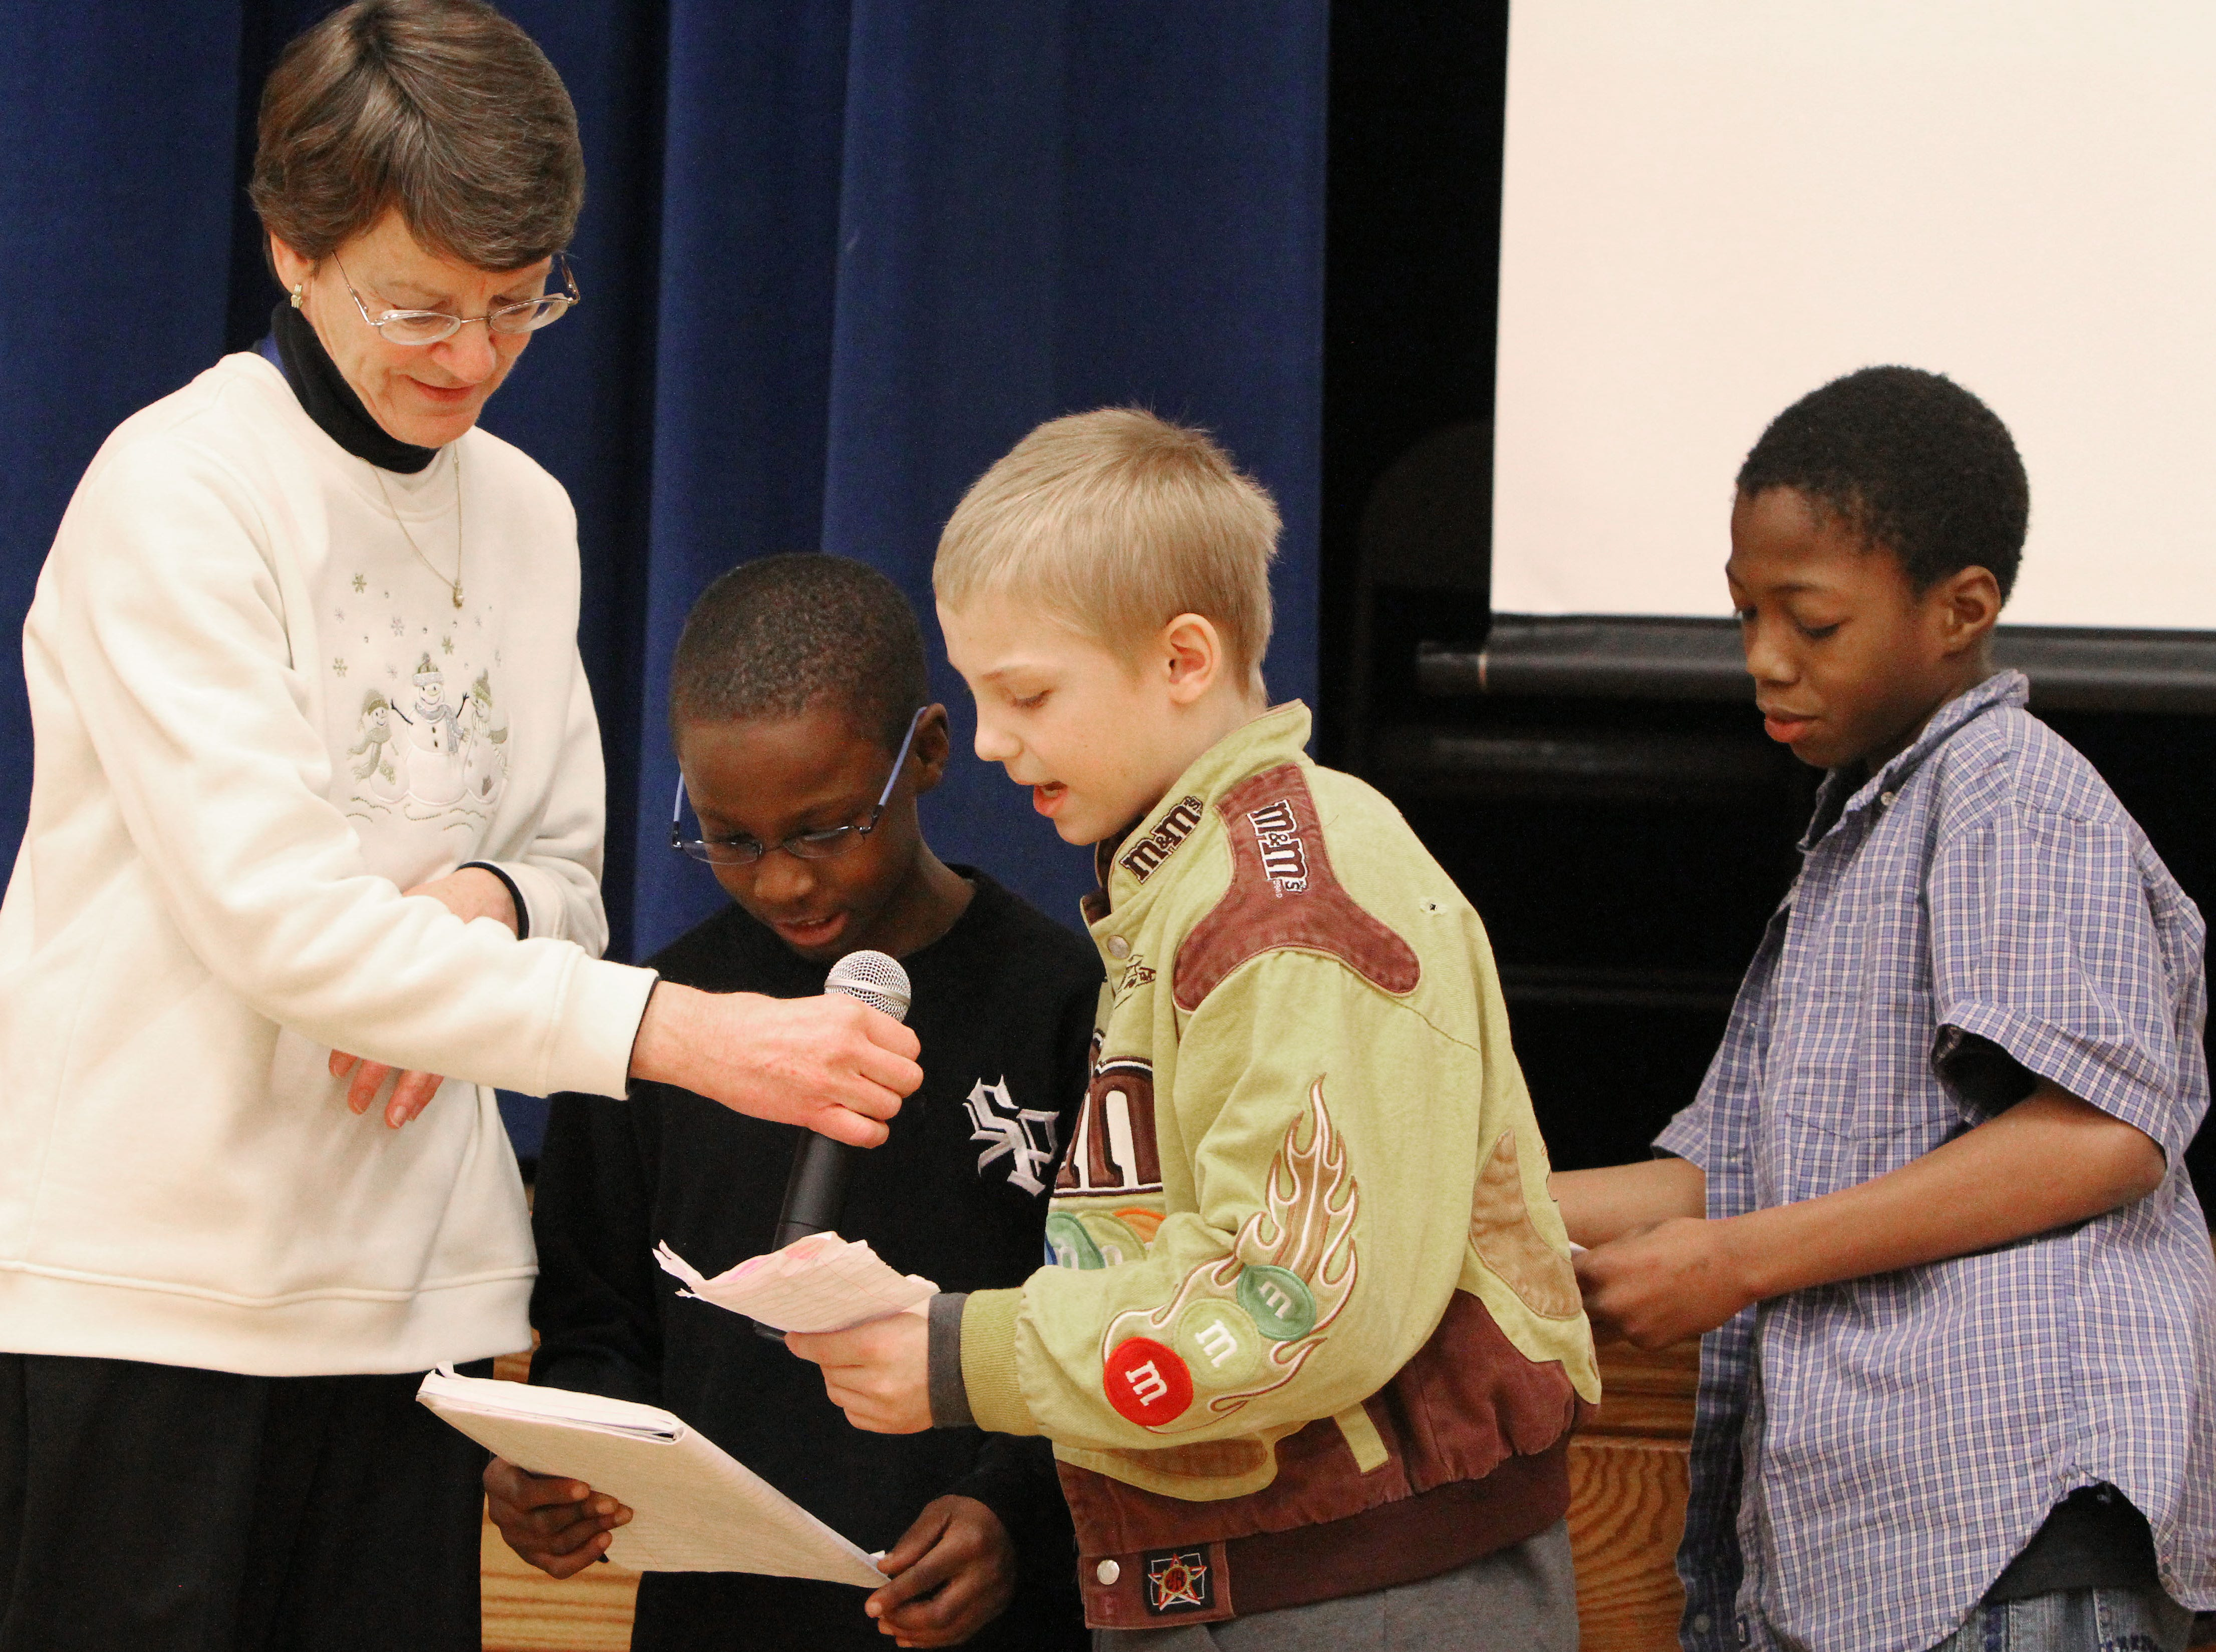 2012: Fassett Elementary School music teacher Ruth Bruning holds the microphone as fourth-graders, from left, Jayzell McCoy, Stephen Lattimer and Andre Murphy read their haiku honoring Martin Luther King, Jr, during the Martin Luther King, Jr. assembly Friday afternoon.